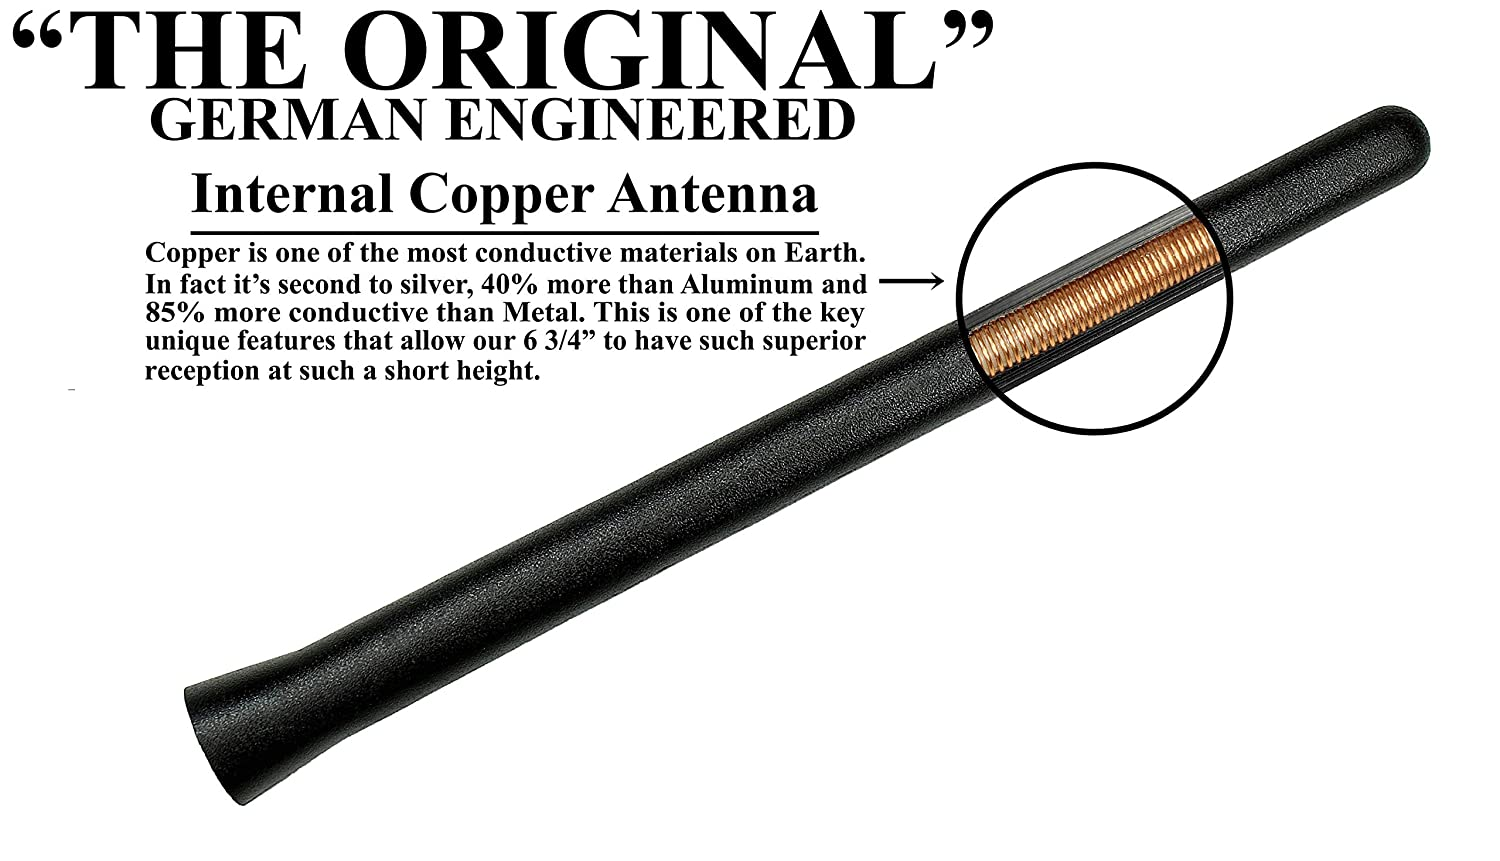 1982-2004 AntennaMastsRus German Engineered The Original 6 3//4 Inch is Compatible with Chevrolet S10 - Short Rubber Antenna Internal Copper Coil Premium Reception